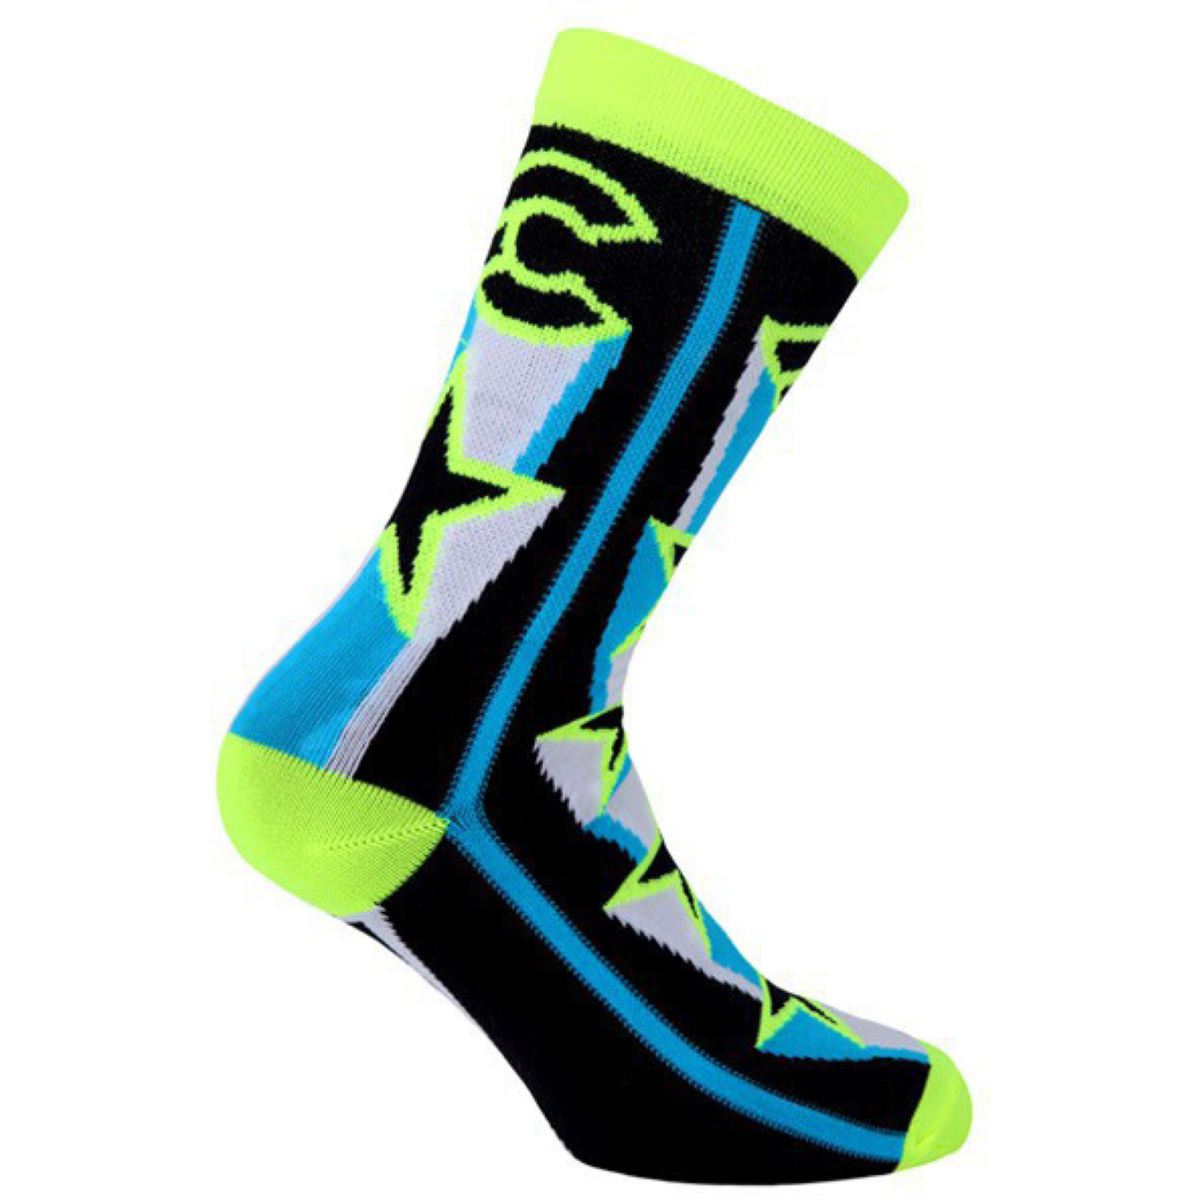 Chaussettes Cinelli Star - XS/S Yellow/Blue  Chaussettes